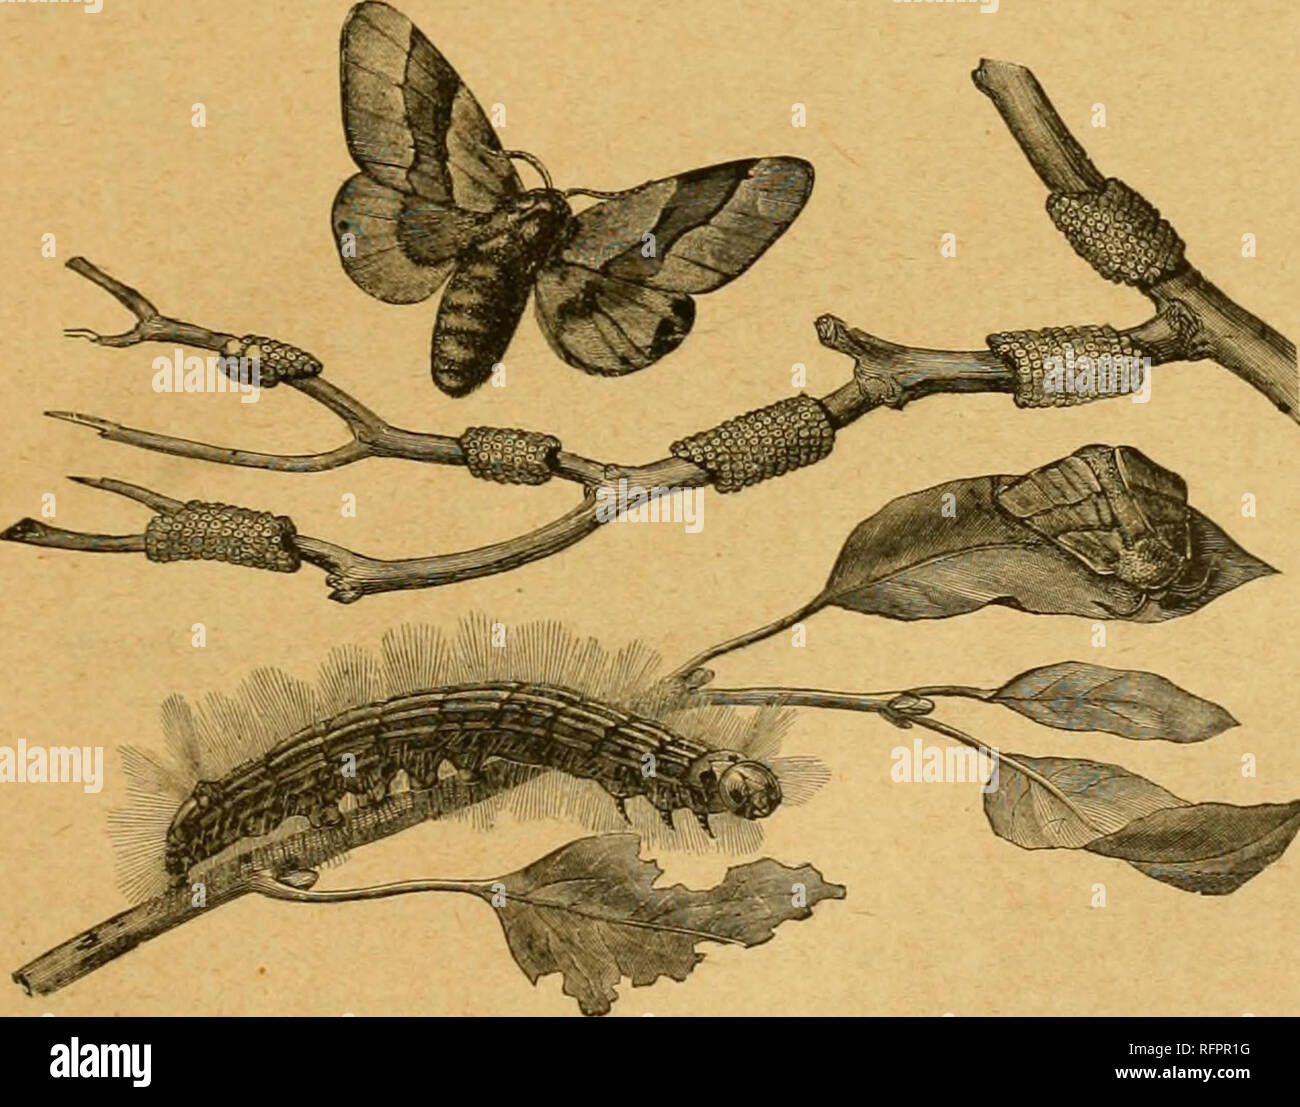 . Cassell's natural history. Animals; Animal behavior. SATVRXIA PVRI. line on thf back, and tin'} lie gregaiiouslj cxiuunon in many part-s of Engl.md, and tin liioad ring rouud a slender tvig The 2enzeridai are latl.ri large Moths, whose caterpiUai ^ feed oil wood, ijiside the flunks of trees, often causing eonsi dcrable damage. The Wood Leopard Moth {Zeuzera aictili) appears to be eommonei louiid London than elsewhere m Enu land. It is white, with nianj steel-blue spots on the wnigs and thoi-ax, and its caterpillai, which is yellow, with a black head, infests apple, ash, and othei trees. Th - Stock Image